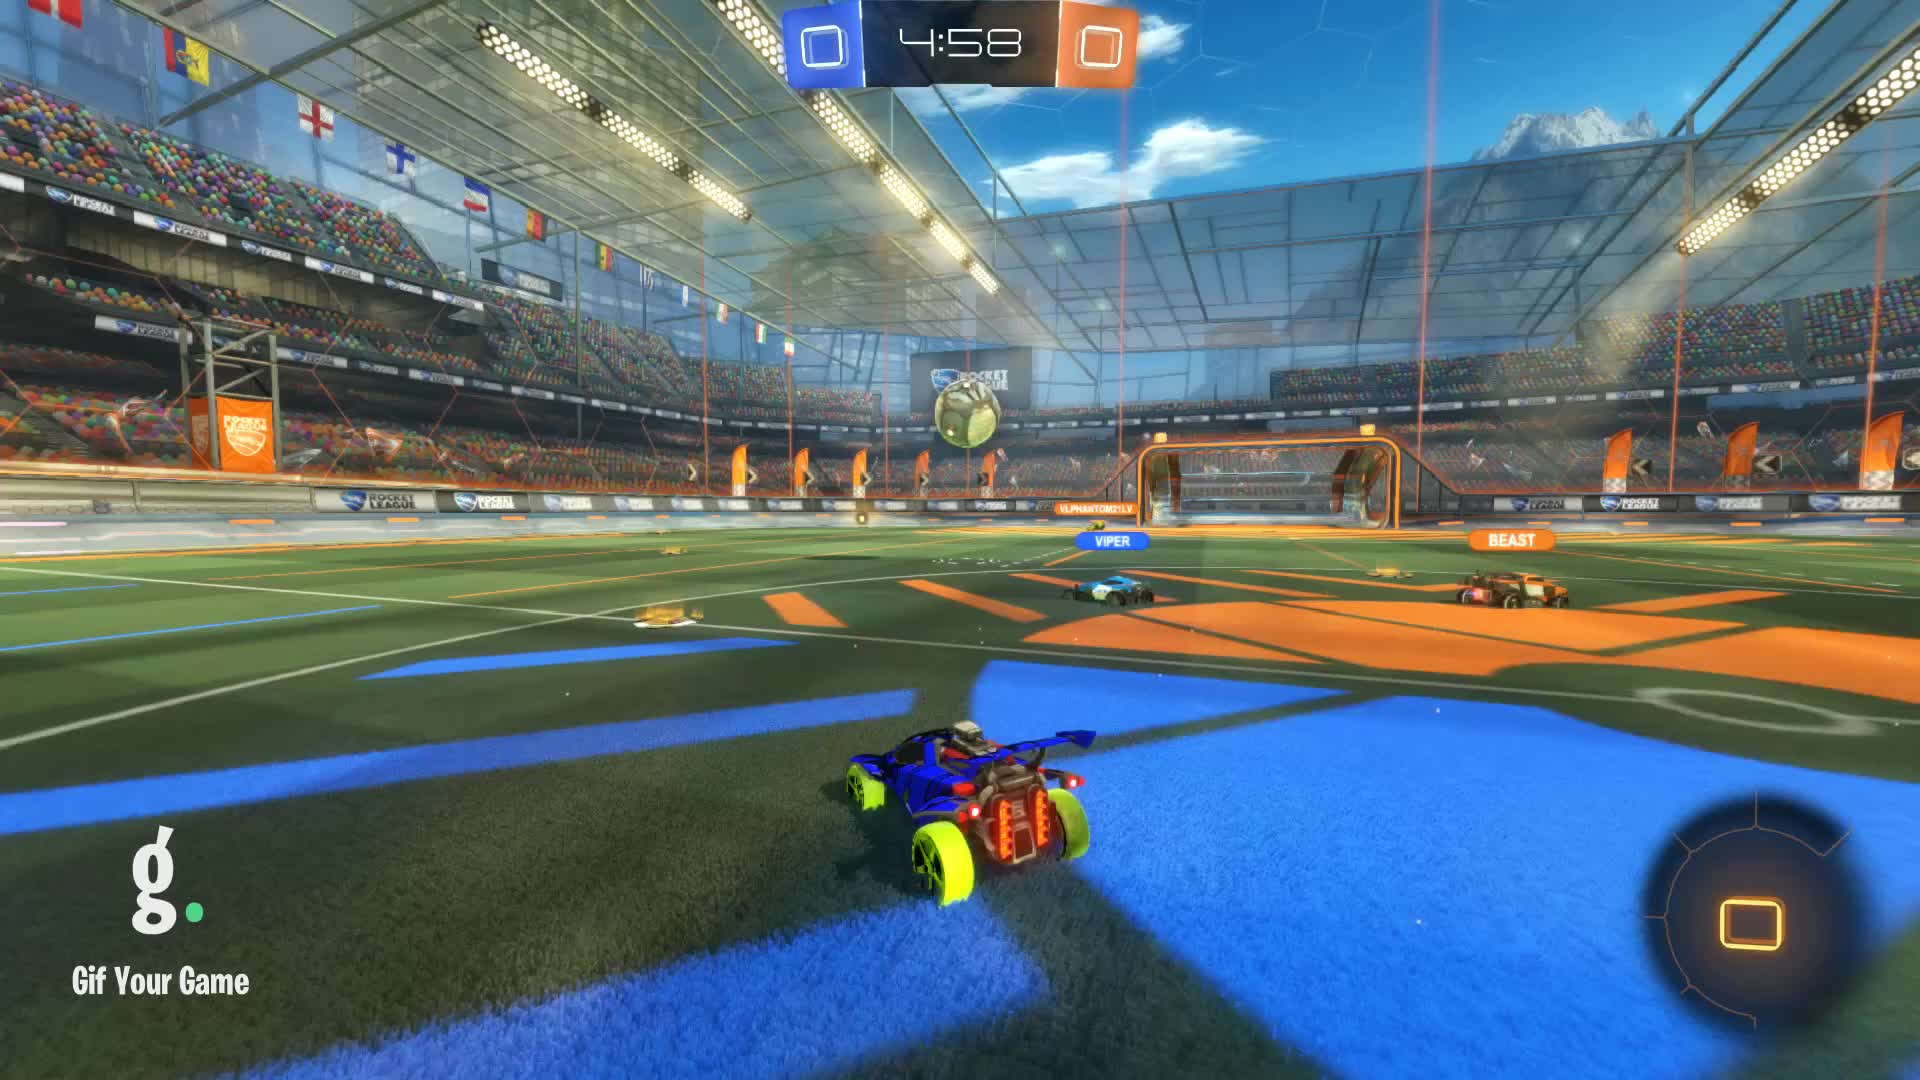 Gif Your Game, GifYourGame, Goal, Rocket League, RocketLeague, venomspire, Goal 1: venomspire GIFs